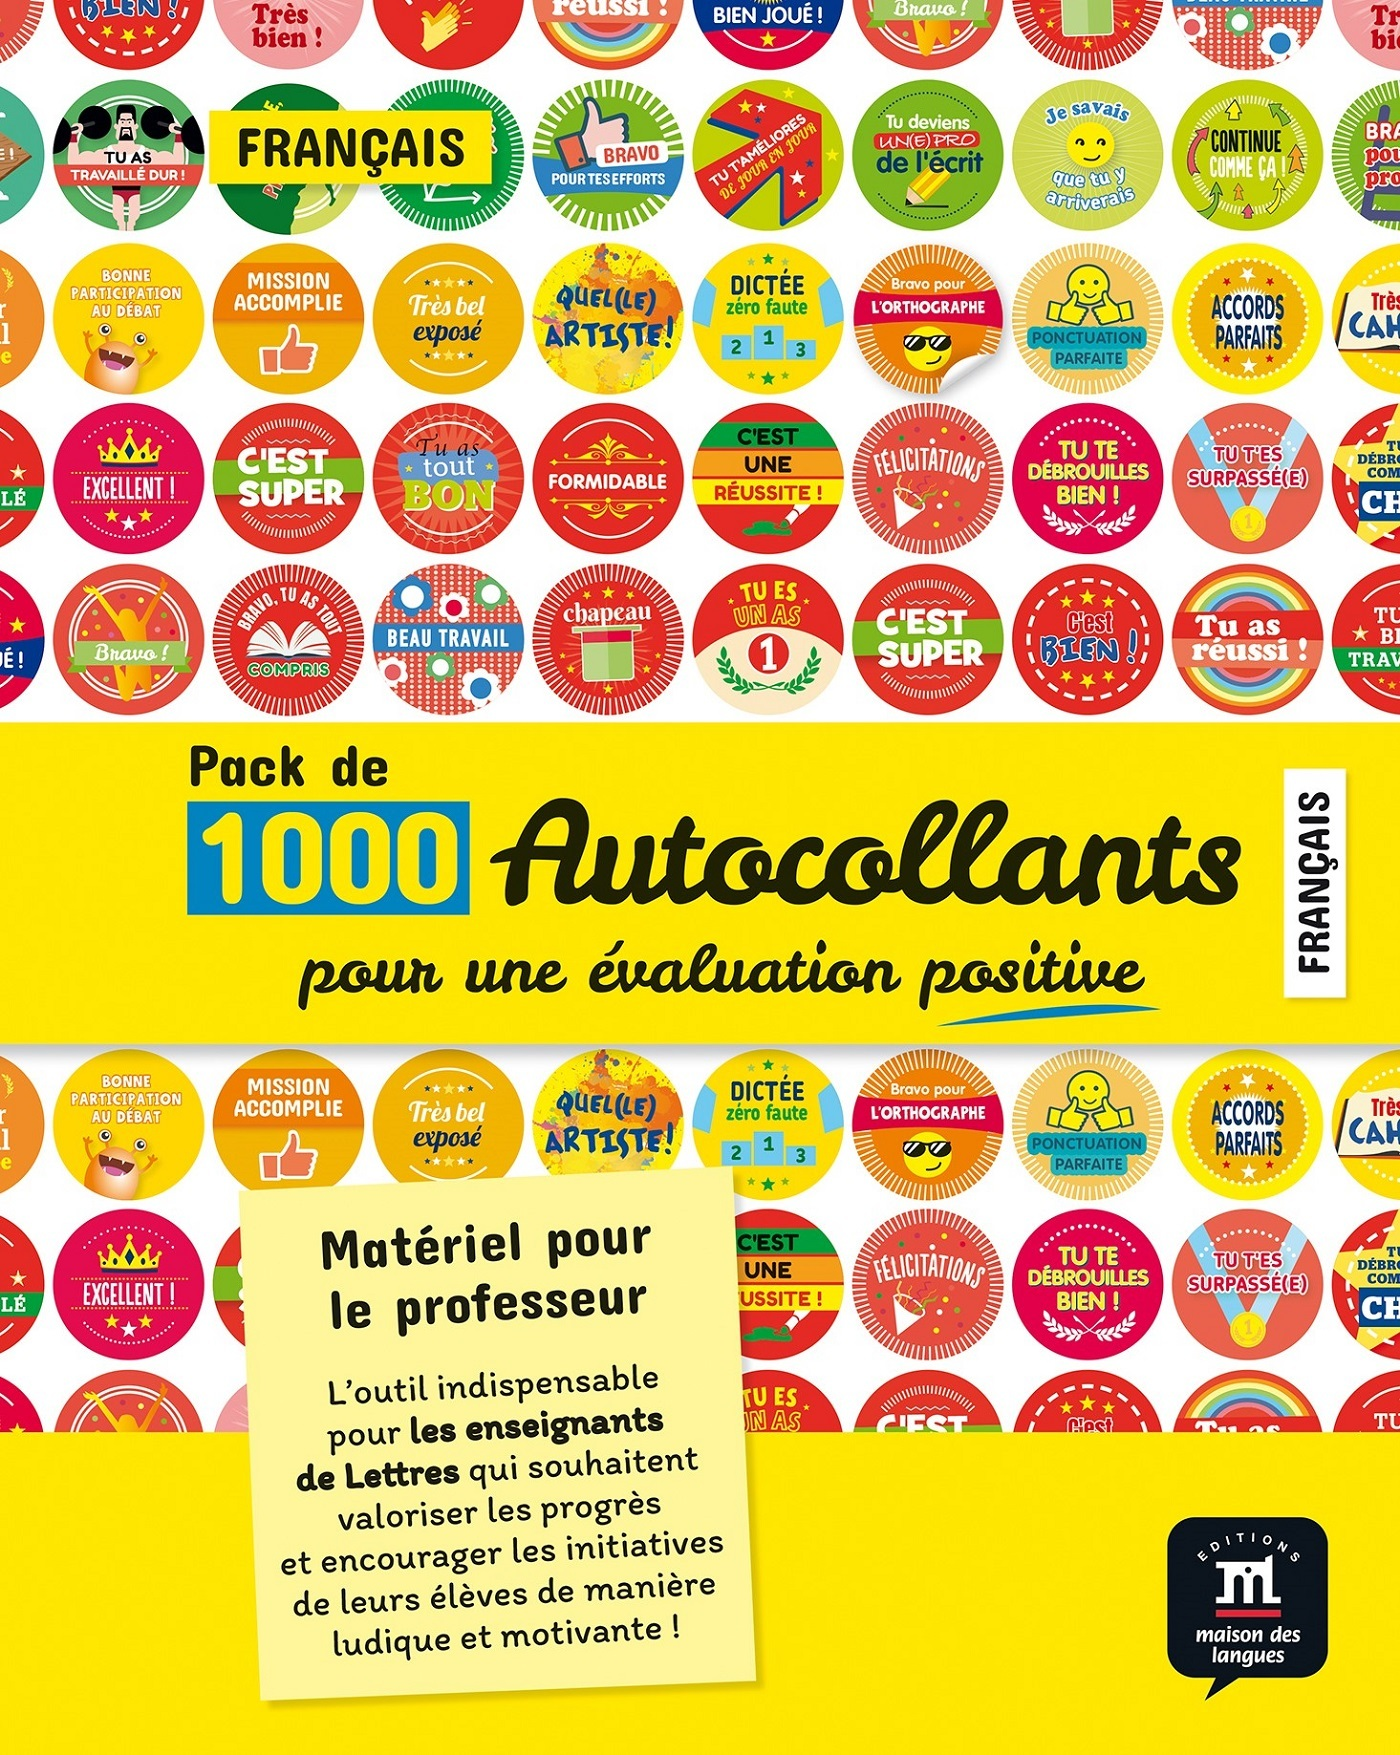 PACK D'AUTOCOLLANTS POUR L'EVALUATION EN FRANCAIS